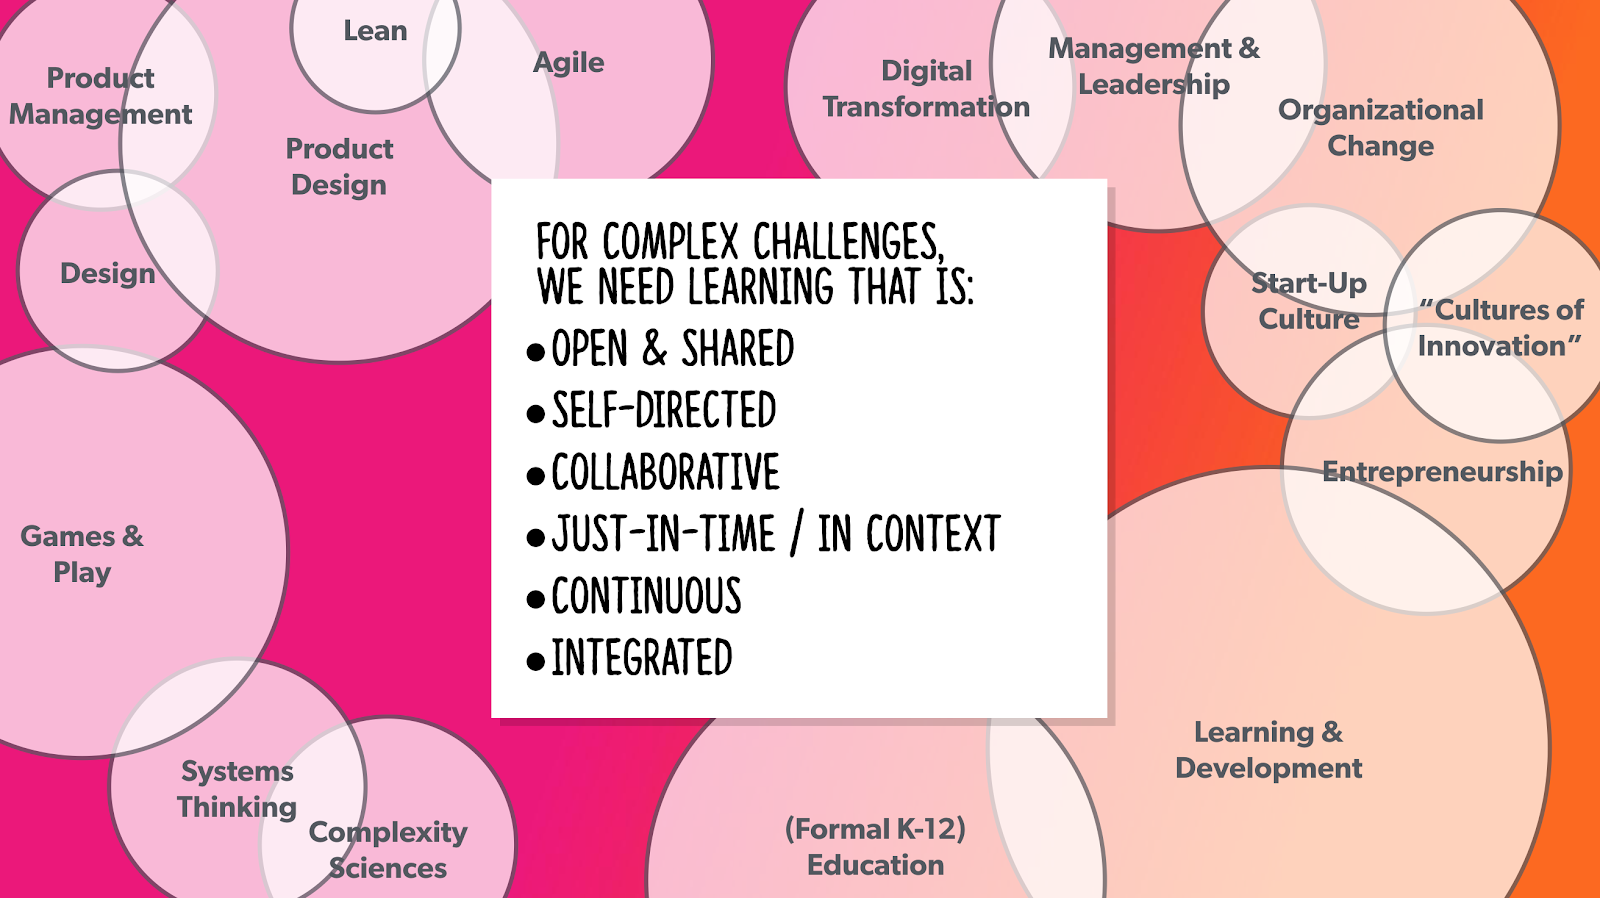 For complex design challenges we need learning that is open & shared, self-directed, collaborative, in-context, continuous, and integrated.